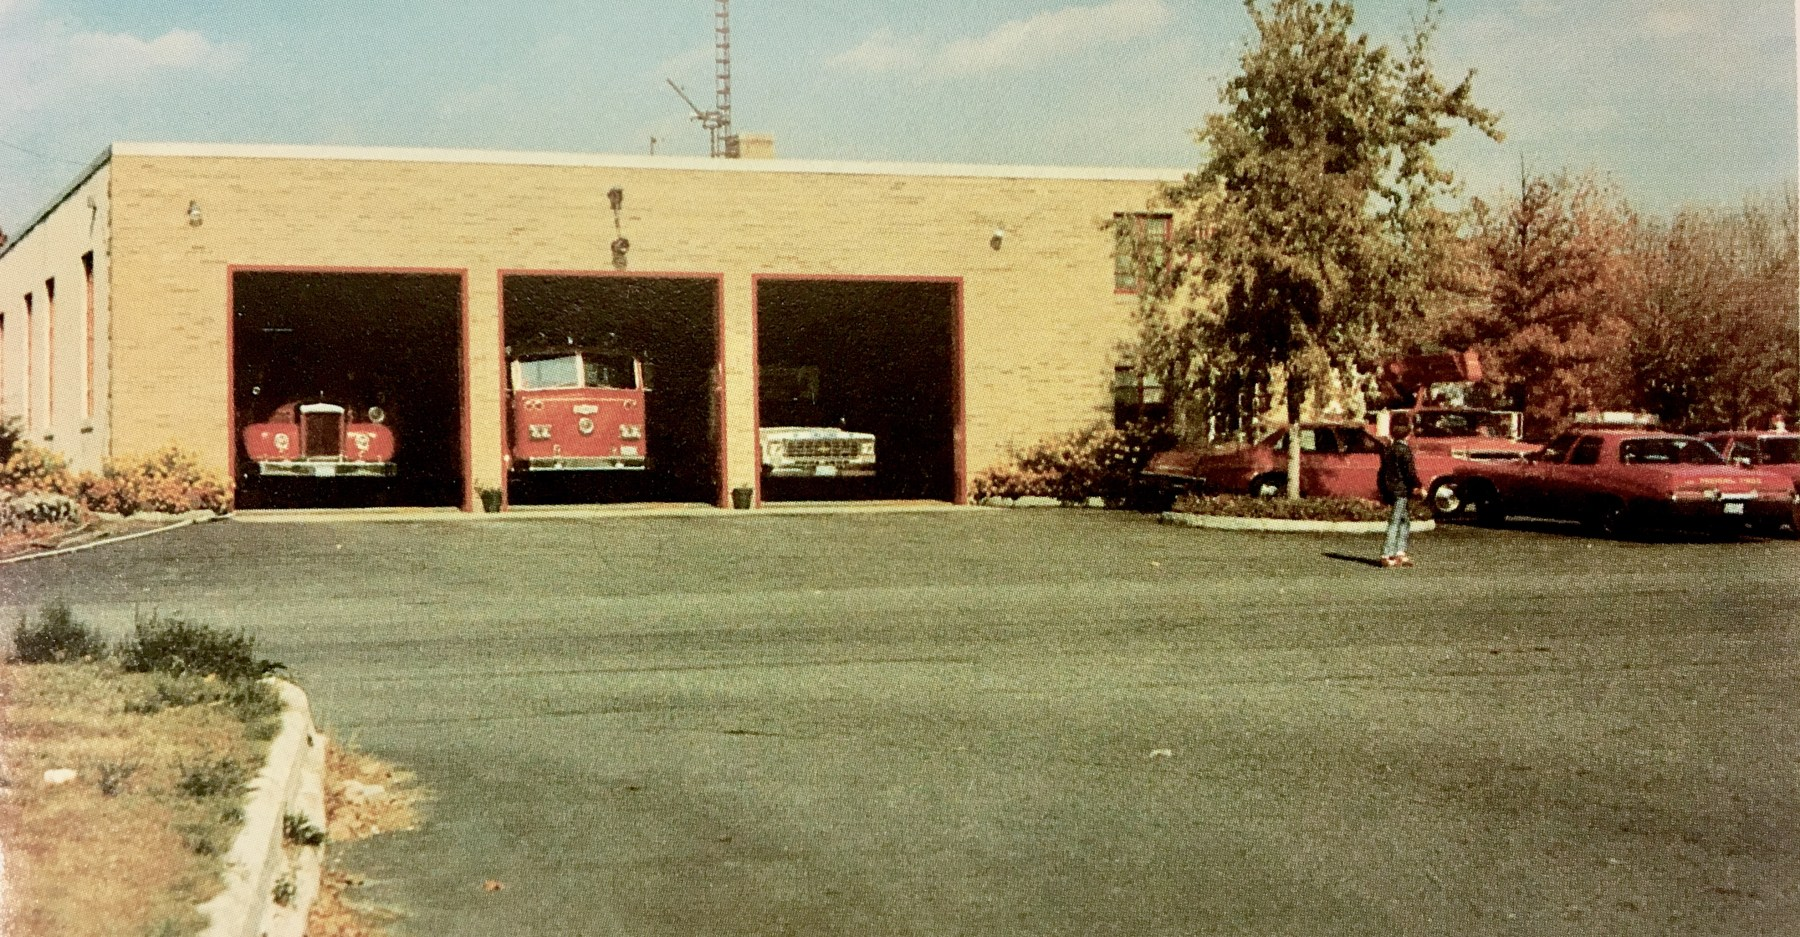 Fire Station, 1978